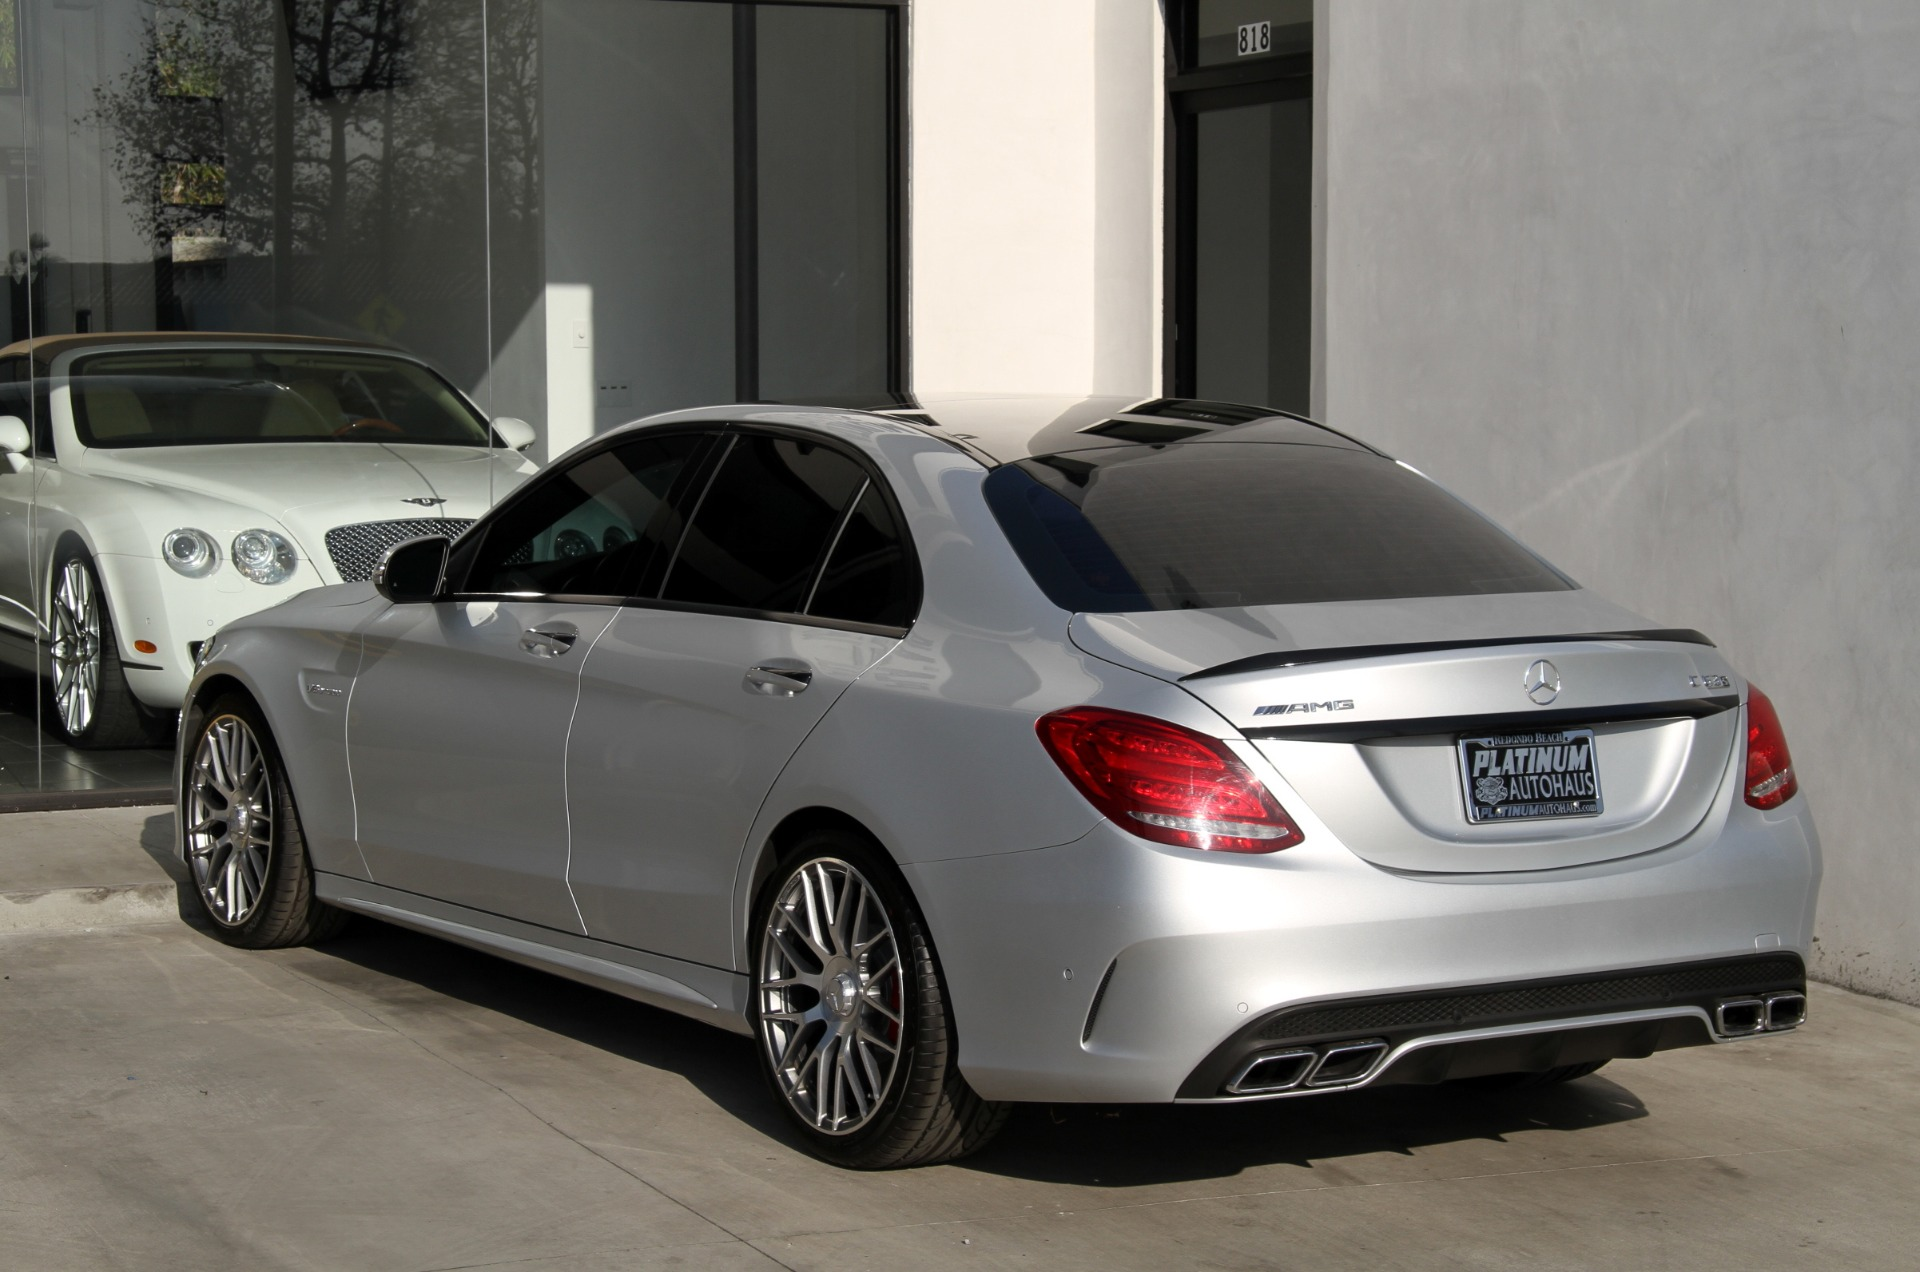 2016 mercedes benz c63 s amg stock 6004 for sale near redondo beach ca ca mercedes benz dealer. Black Bedroom Furniture Sets. Home Design Ideas